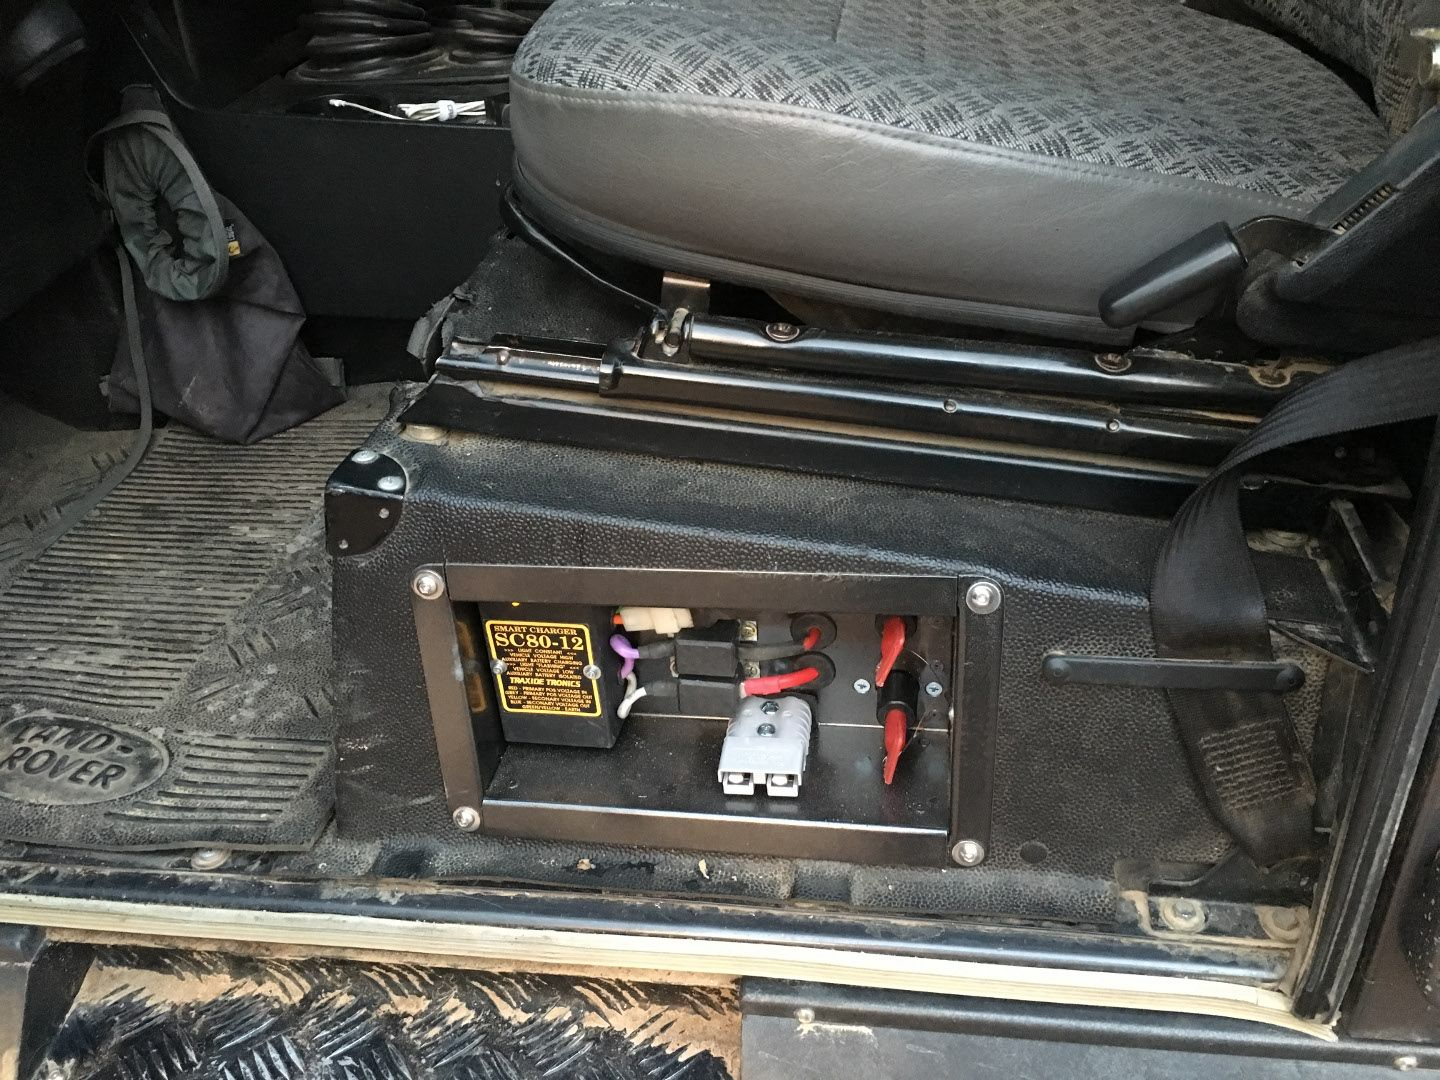 battery reconditioning - landrover defender battery management mais save  money and never buy a new battery